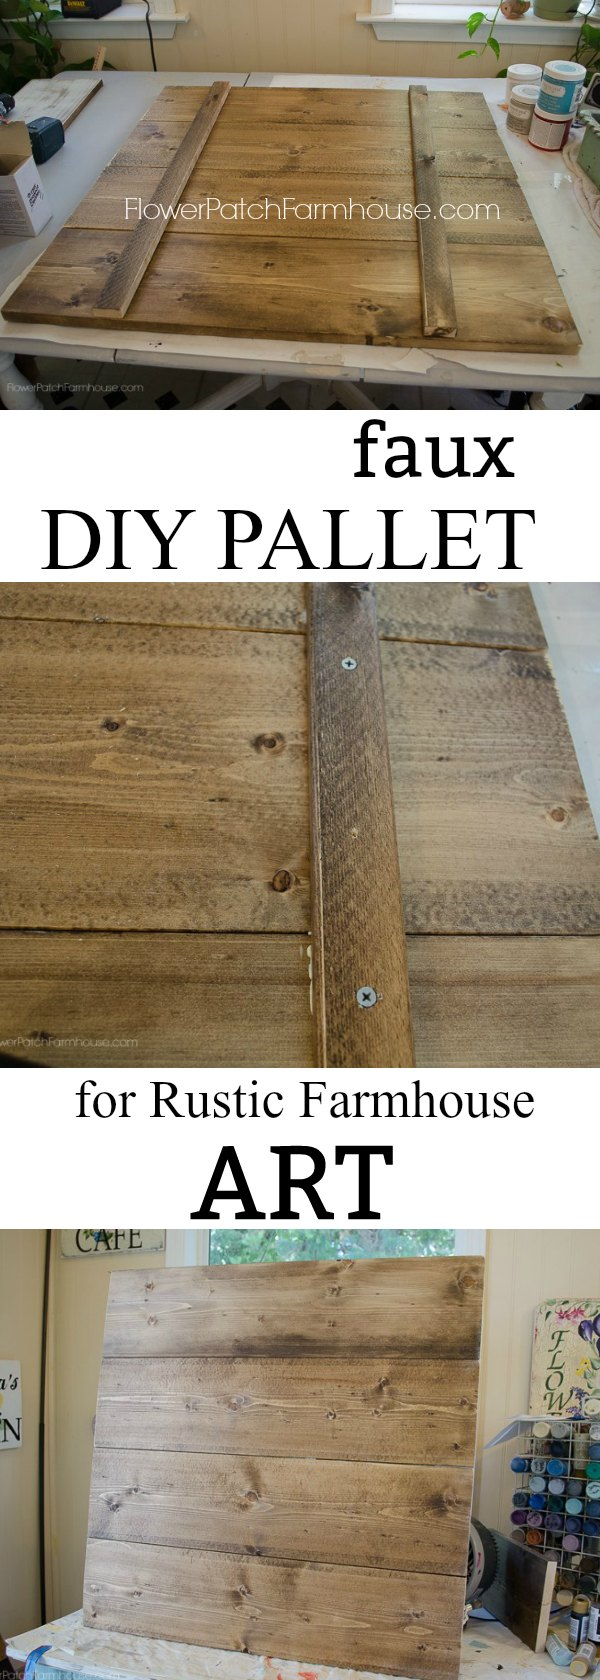 Attach Boards together for Rustic art, Faux pallet for Farmhouse decor.  An easy way to DIY your own surfaces to paint farmhouse cottage decor.